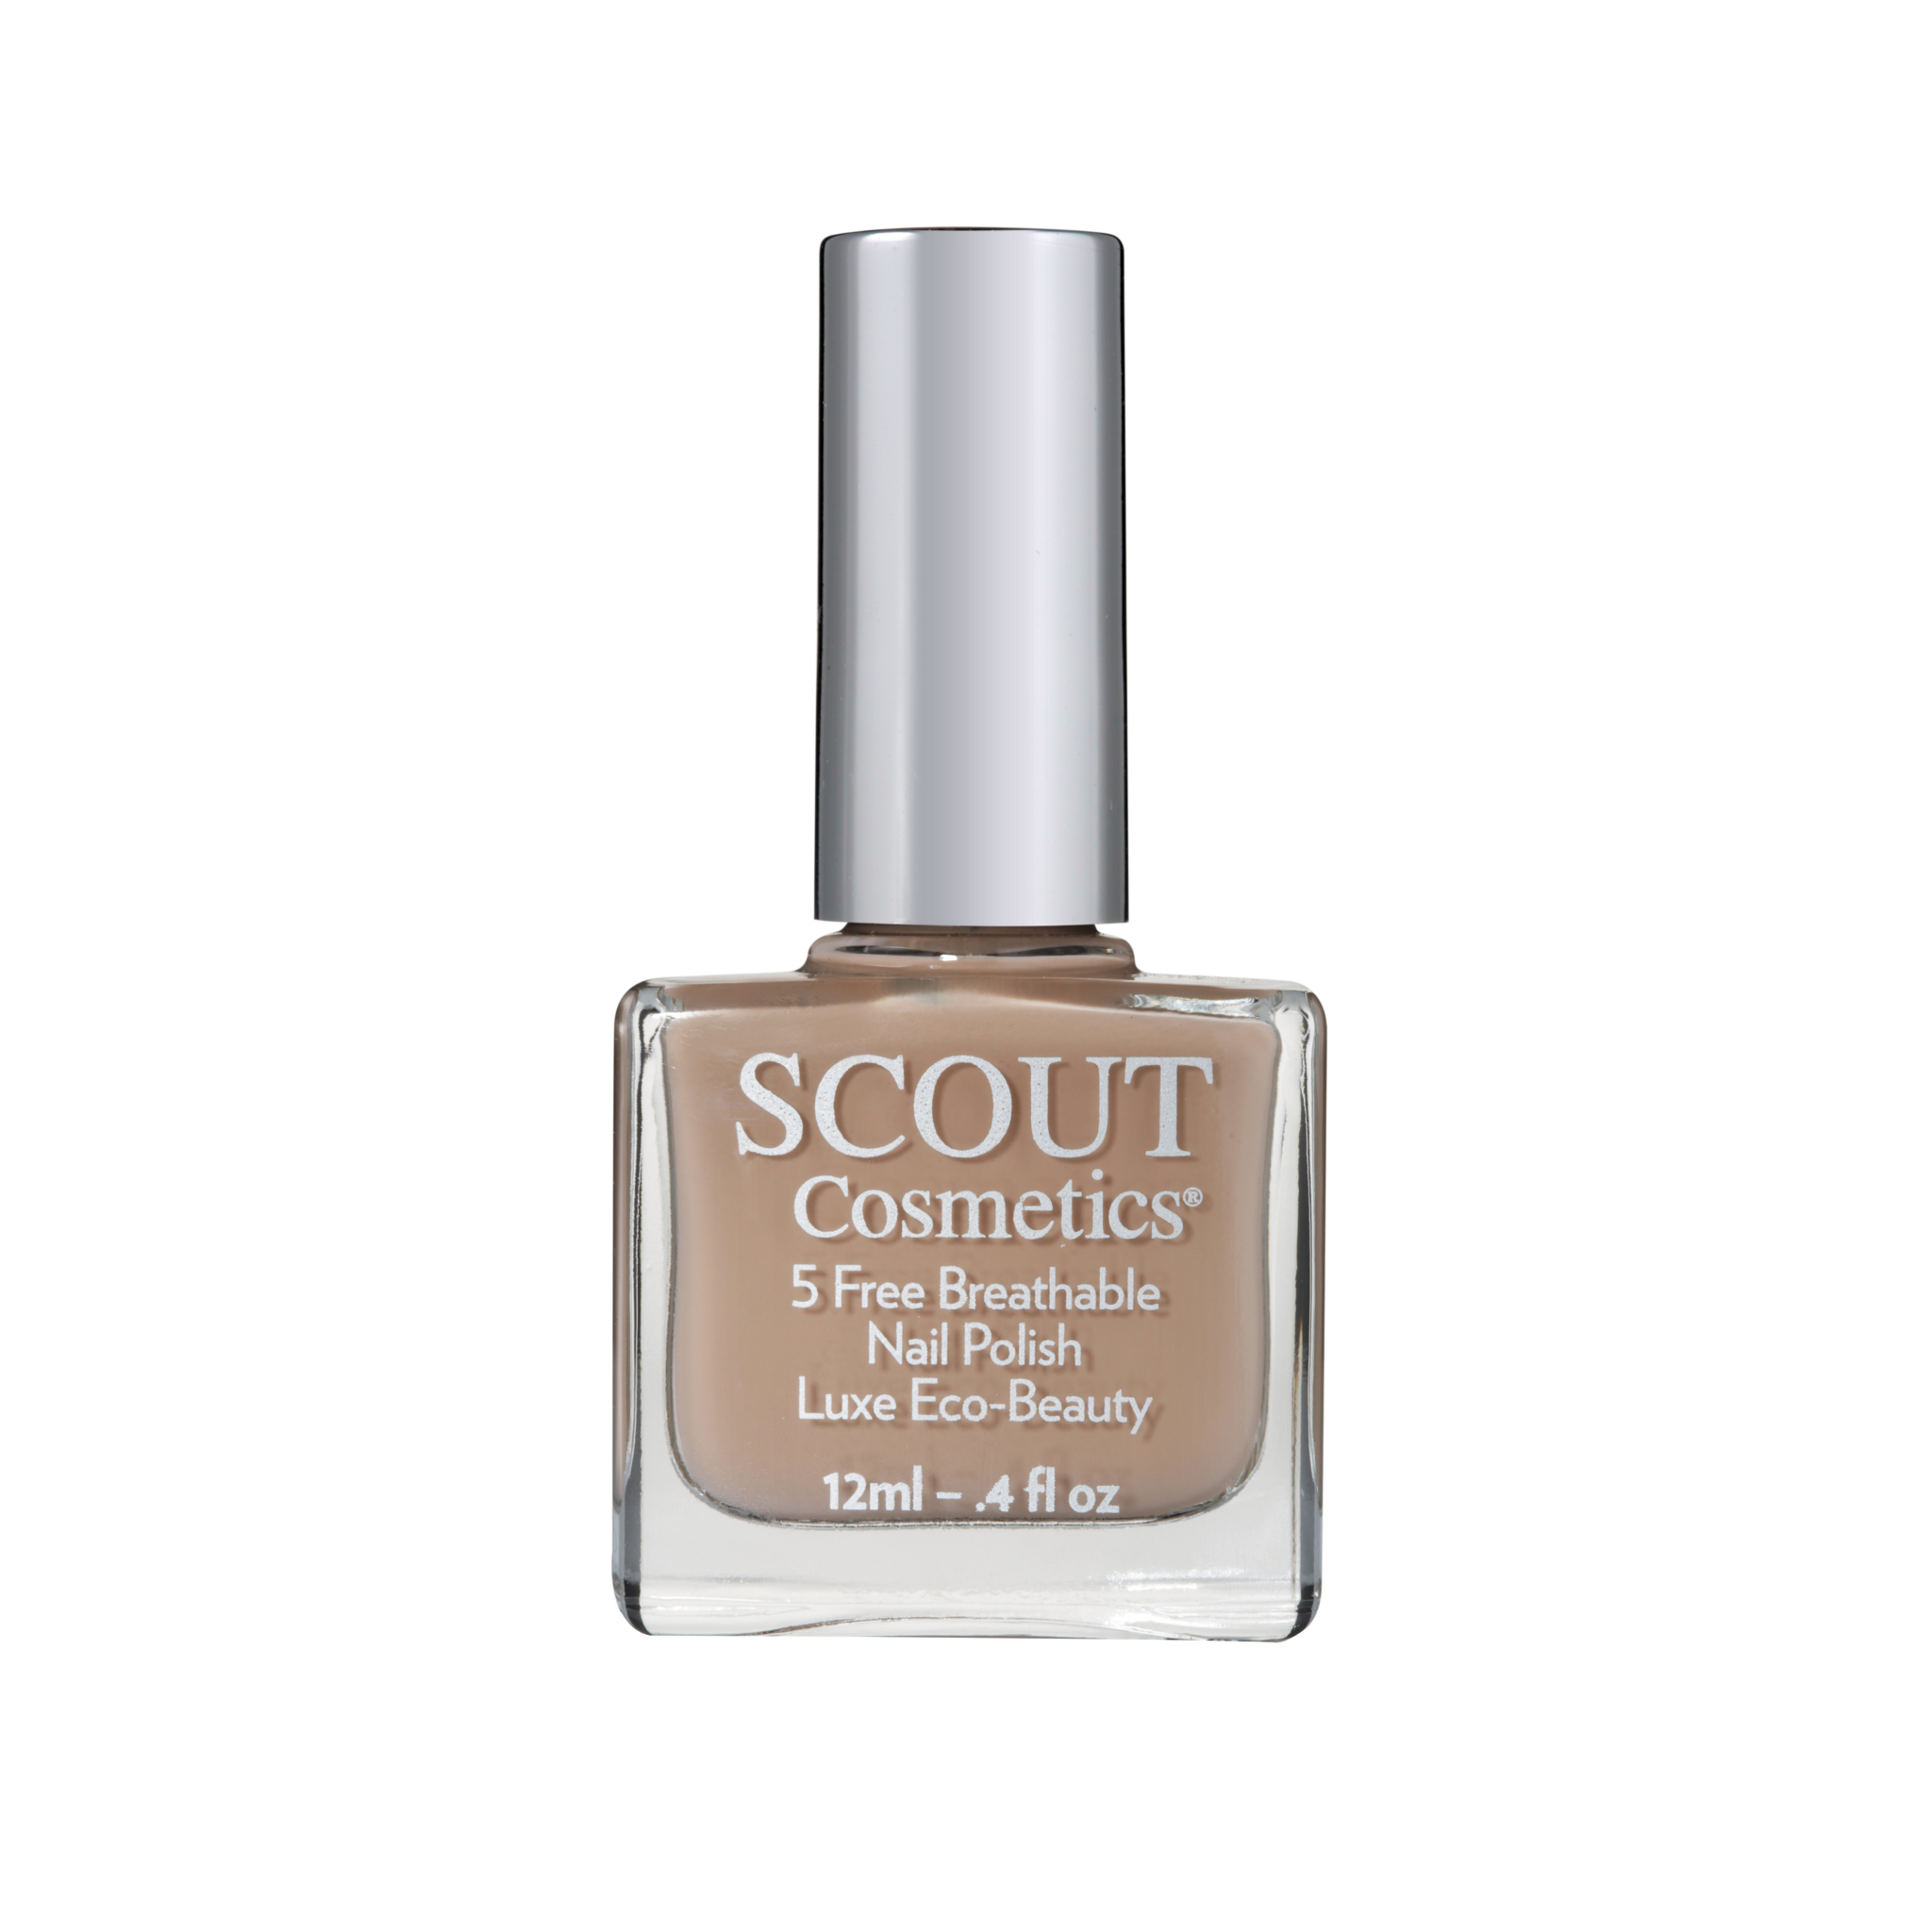 SCOUT Cosmetics Nail Polish - Invisible Touch